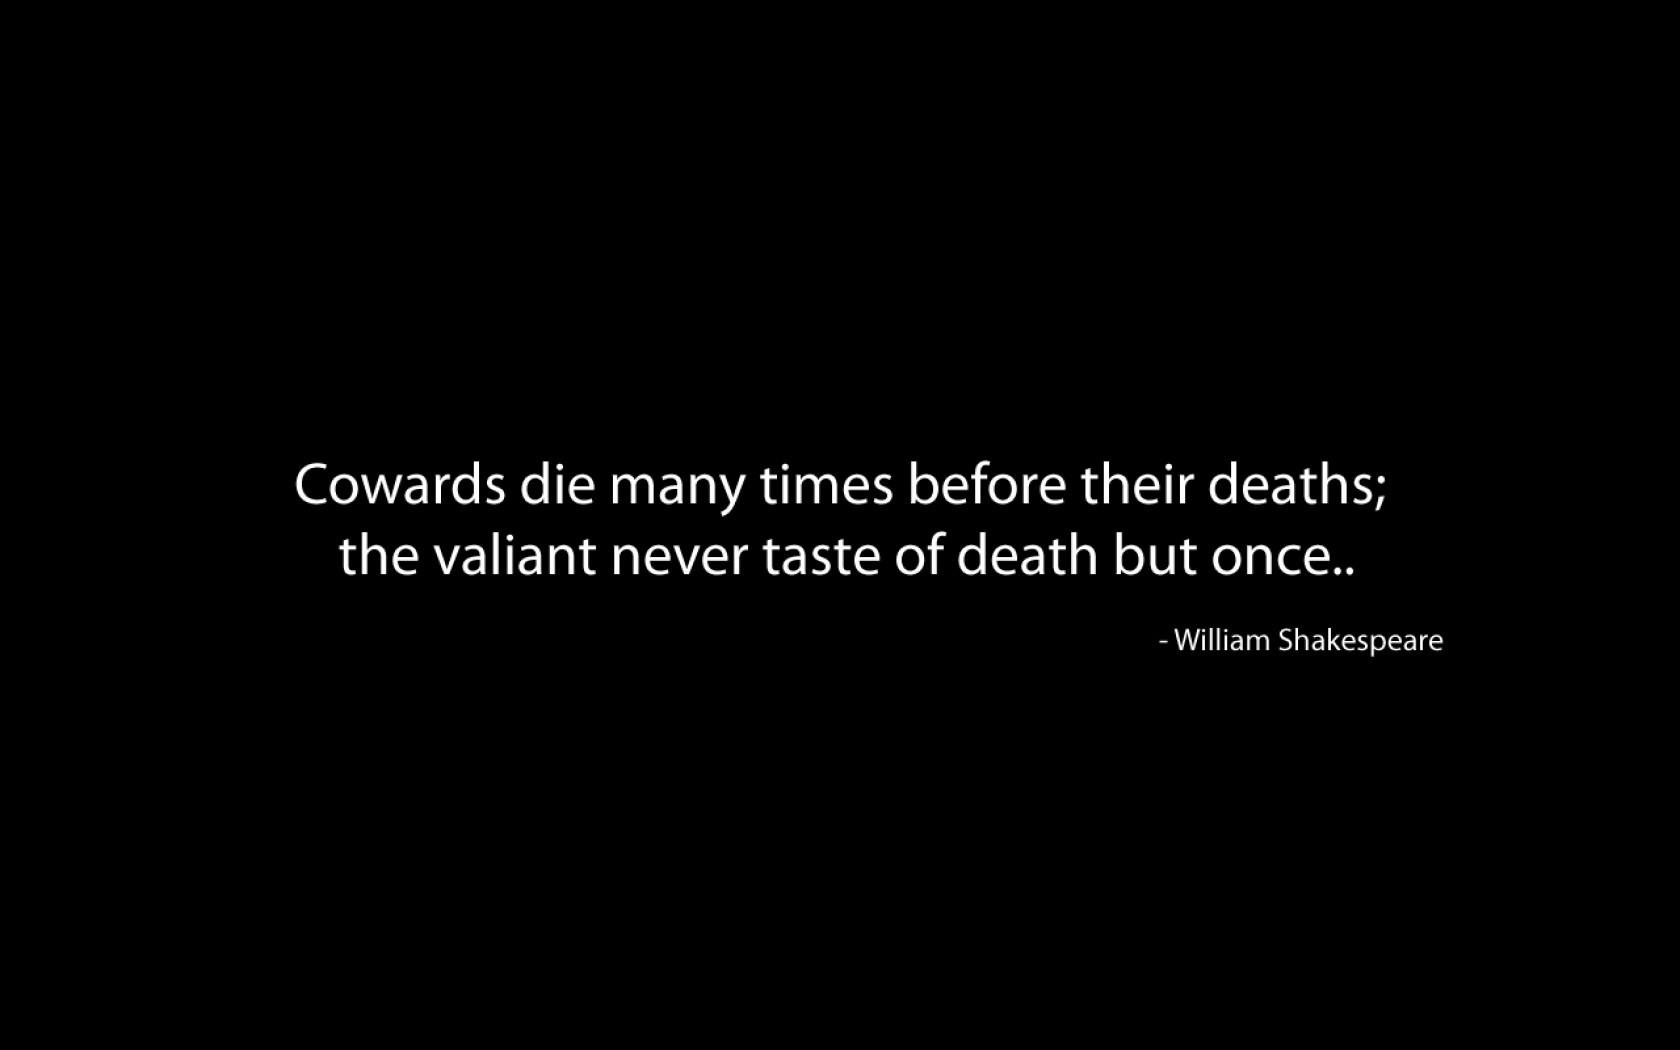 Shakespeare Quotes About Death Shakespeare Quotes About Death Cool William Shakespeare Death